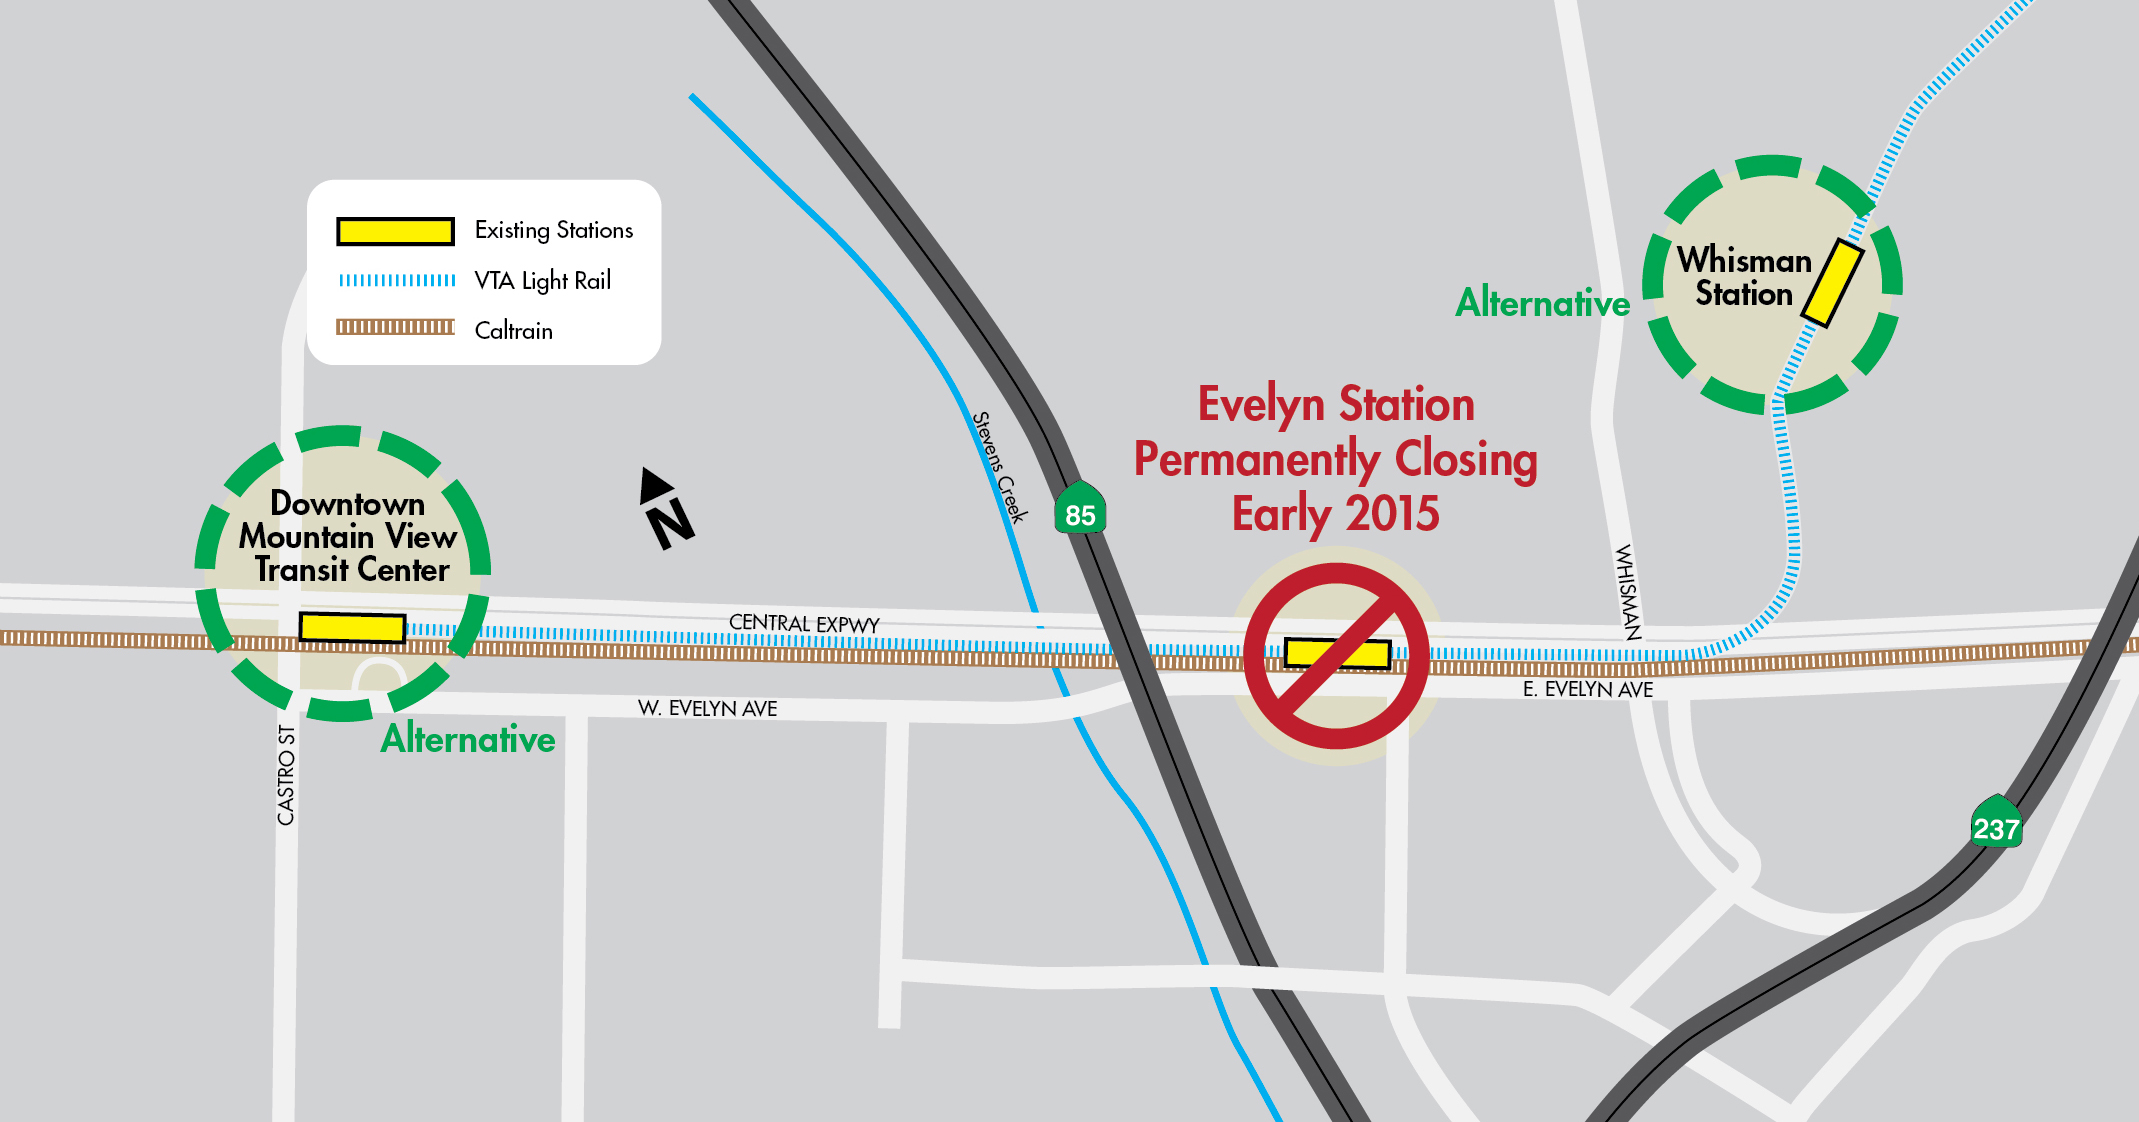 map showing Mountain View and Whisman stations as an alternative to Evelyn